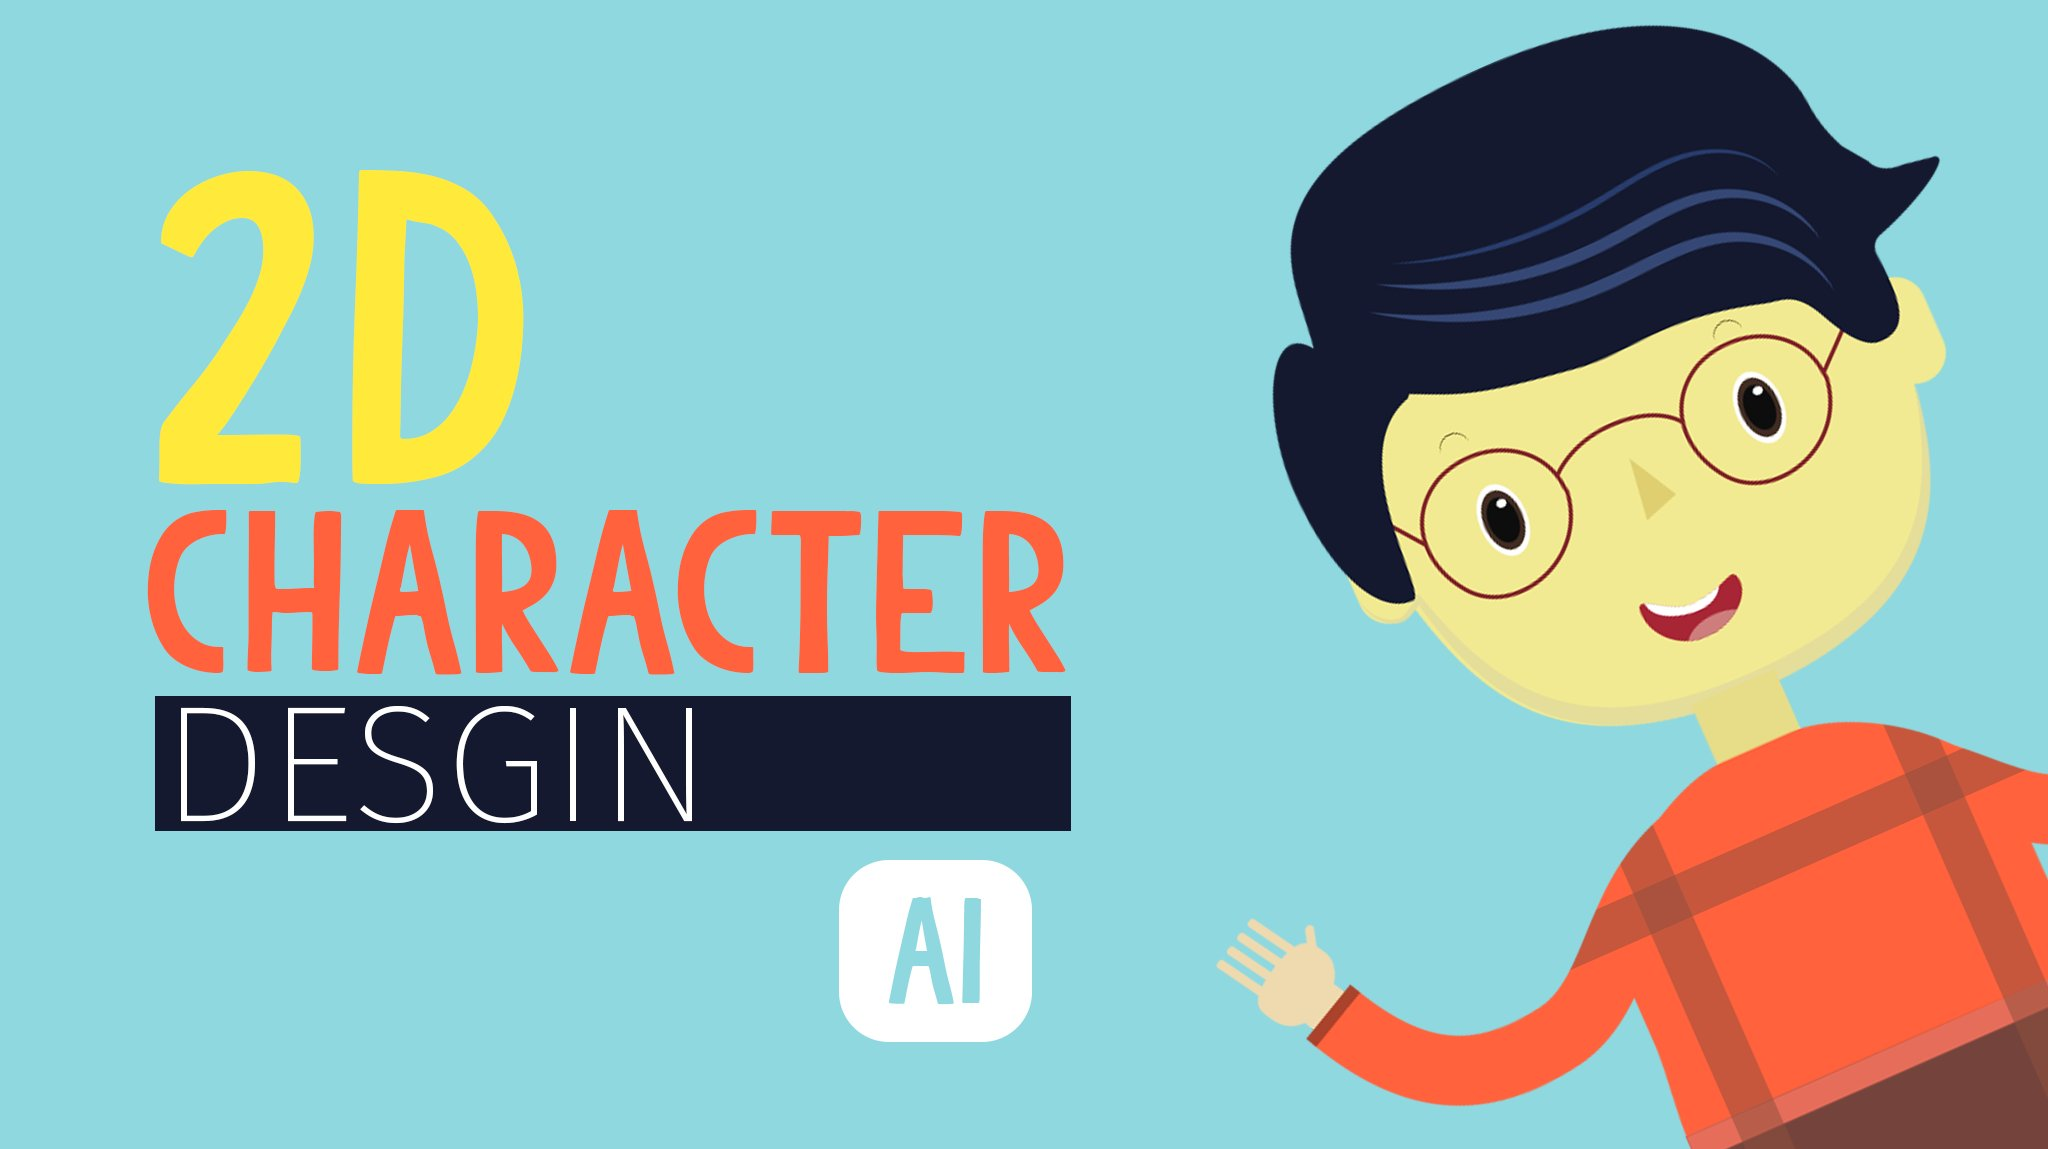 Illustrator Character Design Freelance : D character design in adobe illustrator hu shahir